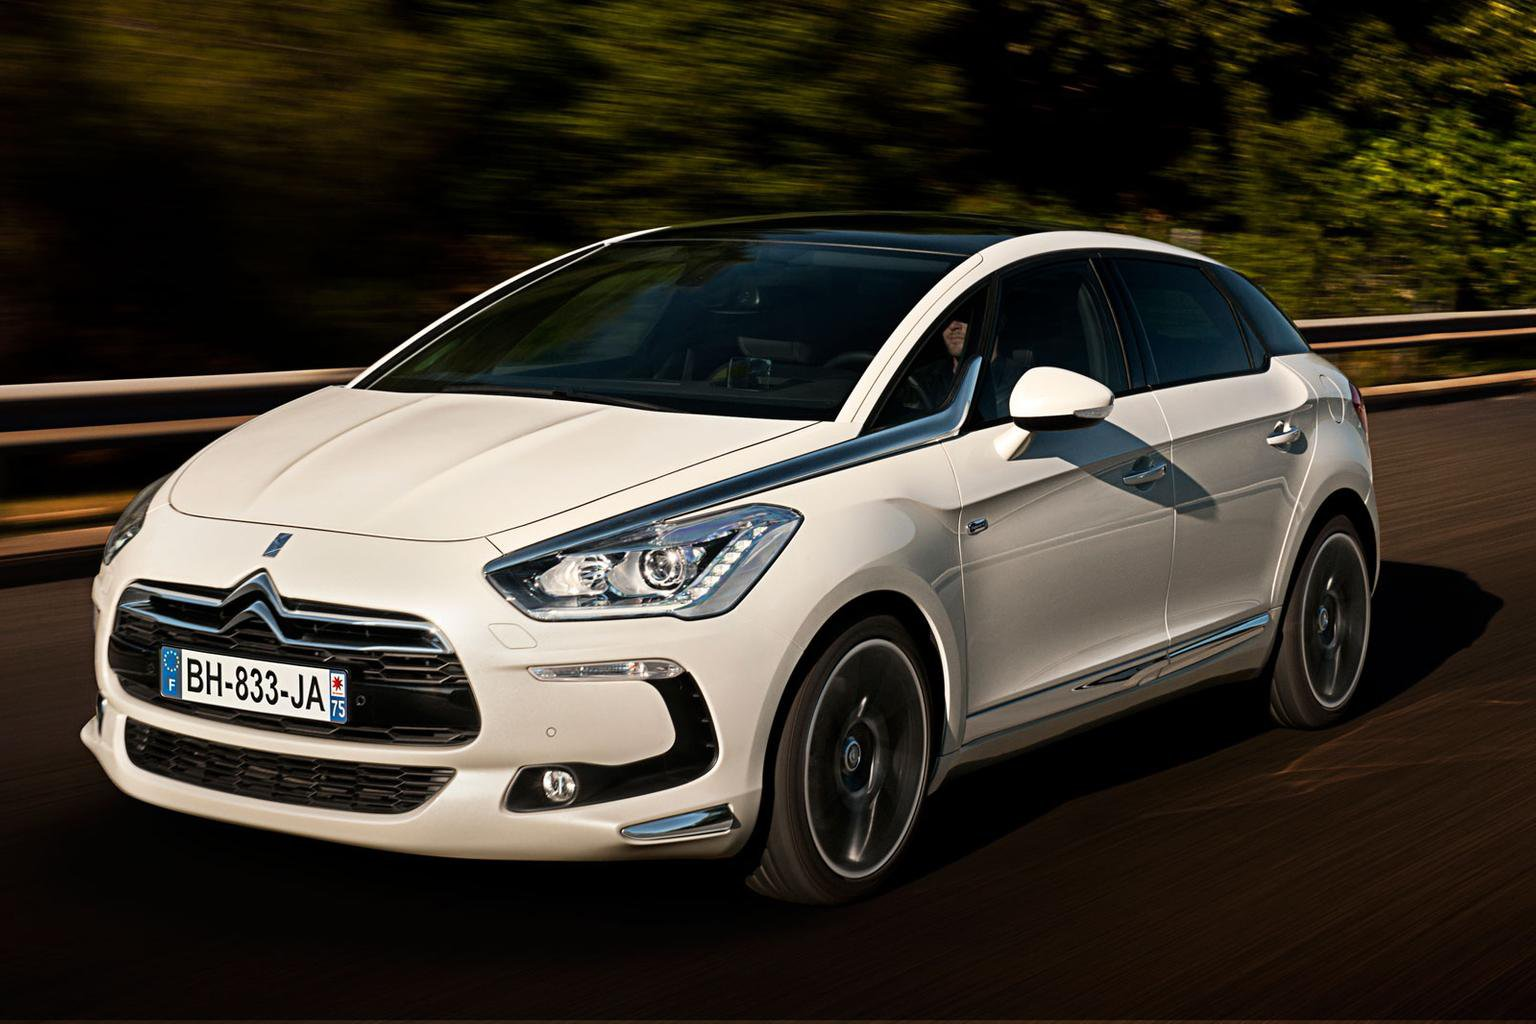 Citroen to drop EGS gearbox for large cars